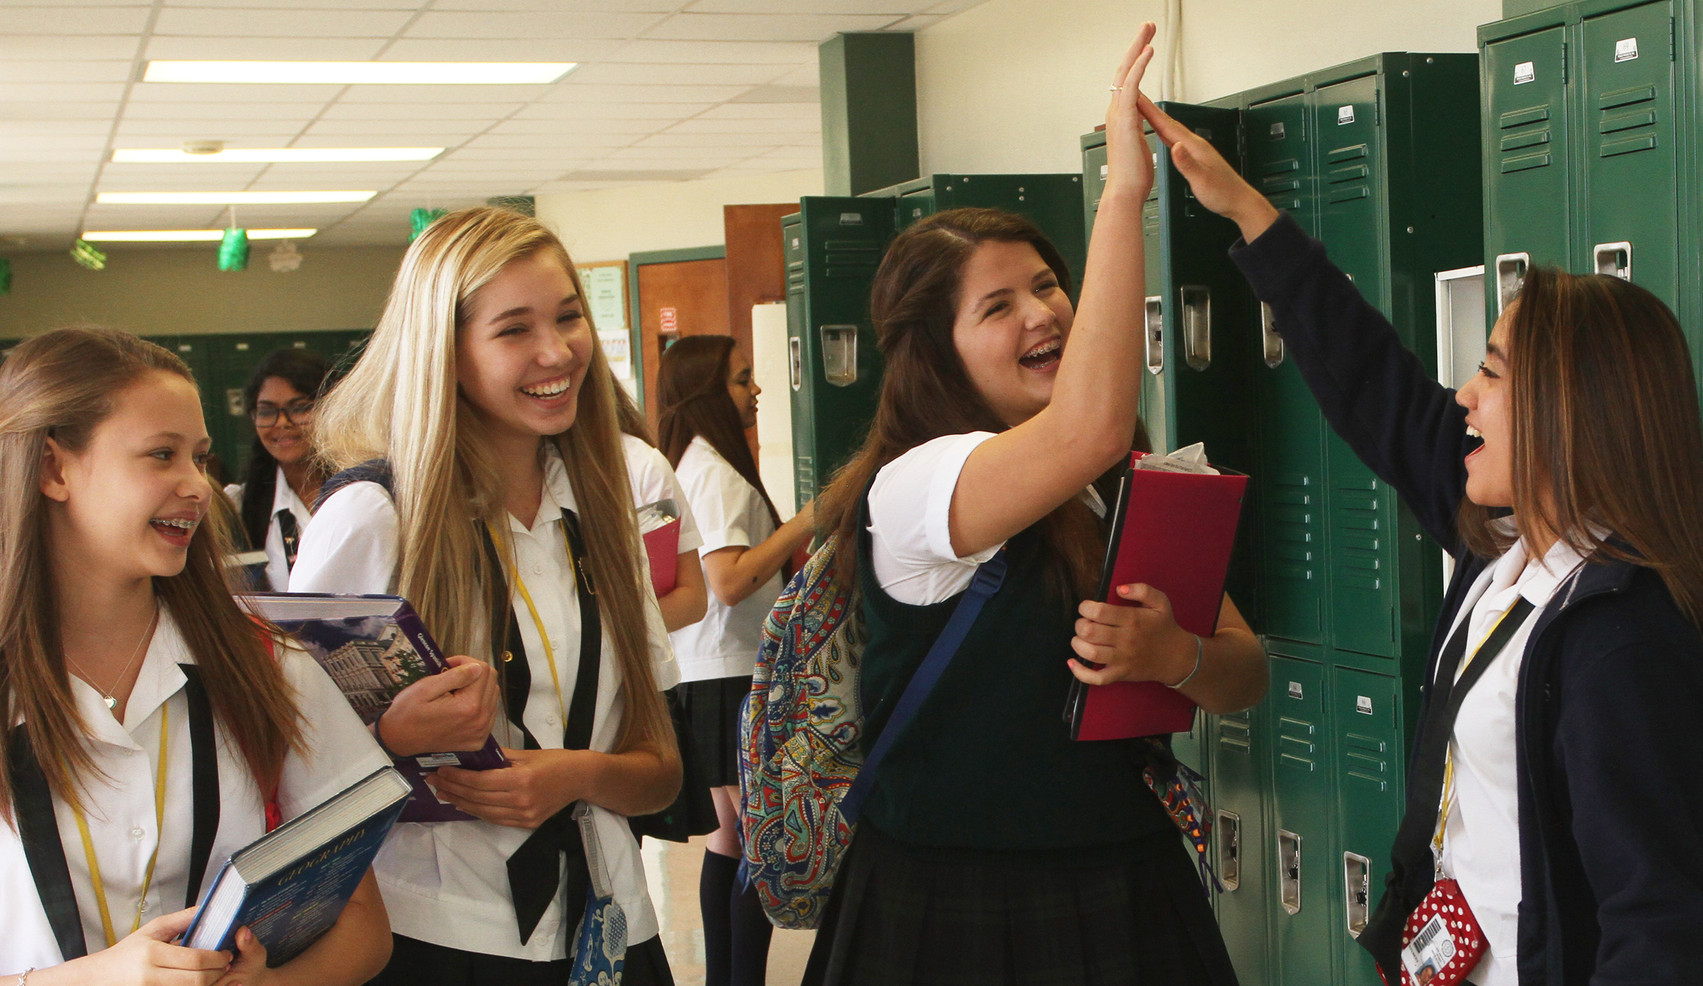 Incarnate Word High School continues to flourish as an institution for young women, educating them with the values of diversity, personal integrity, academic excellence, and stewardship of gifts.